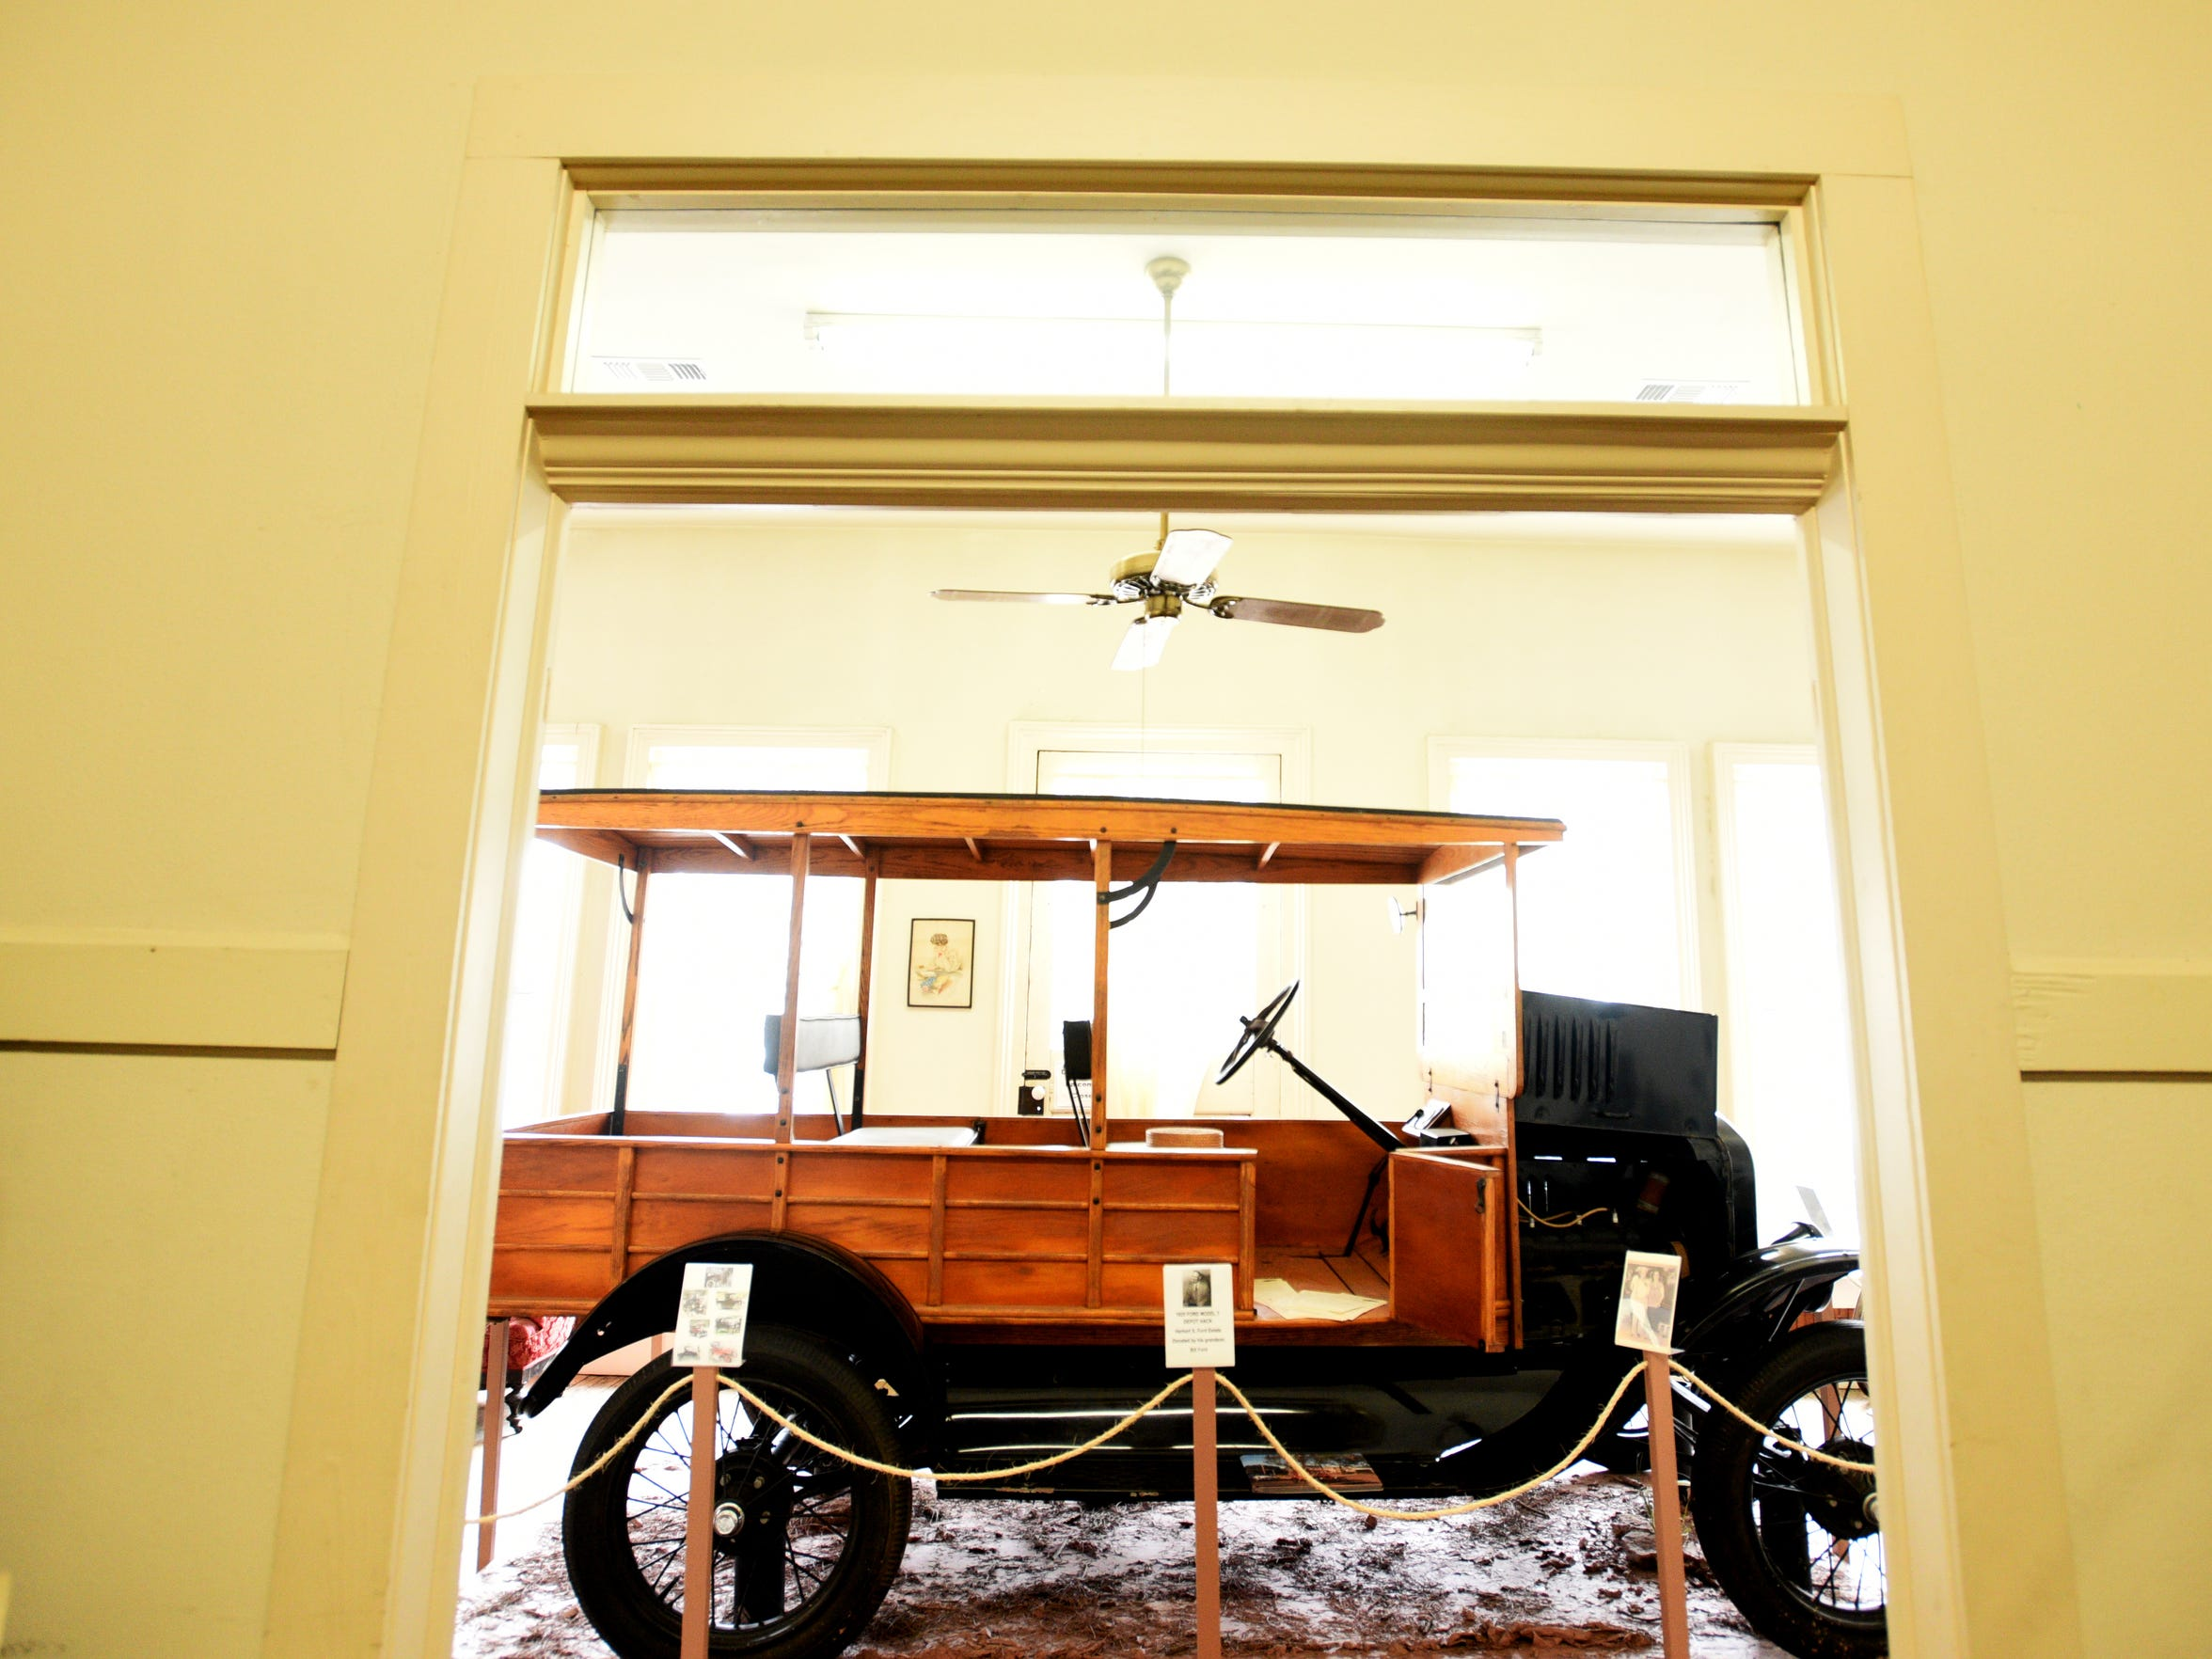 Inside the Herbert S. Ford Memorial Museum in Homer, Louisiana, a museum of local history and culture housed in the former Claiborne Hotel at 519 South Main Street.